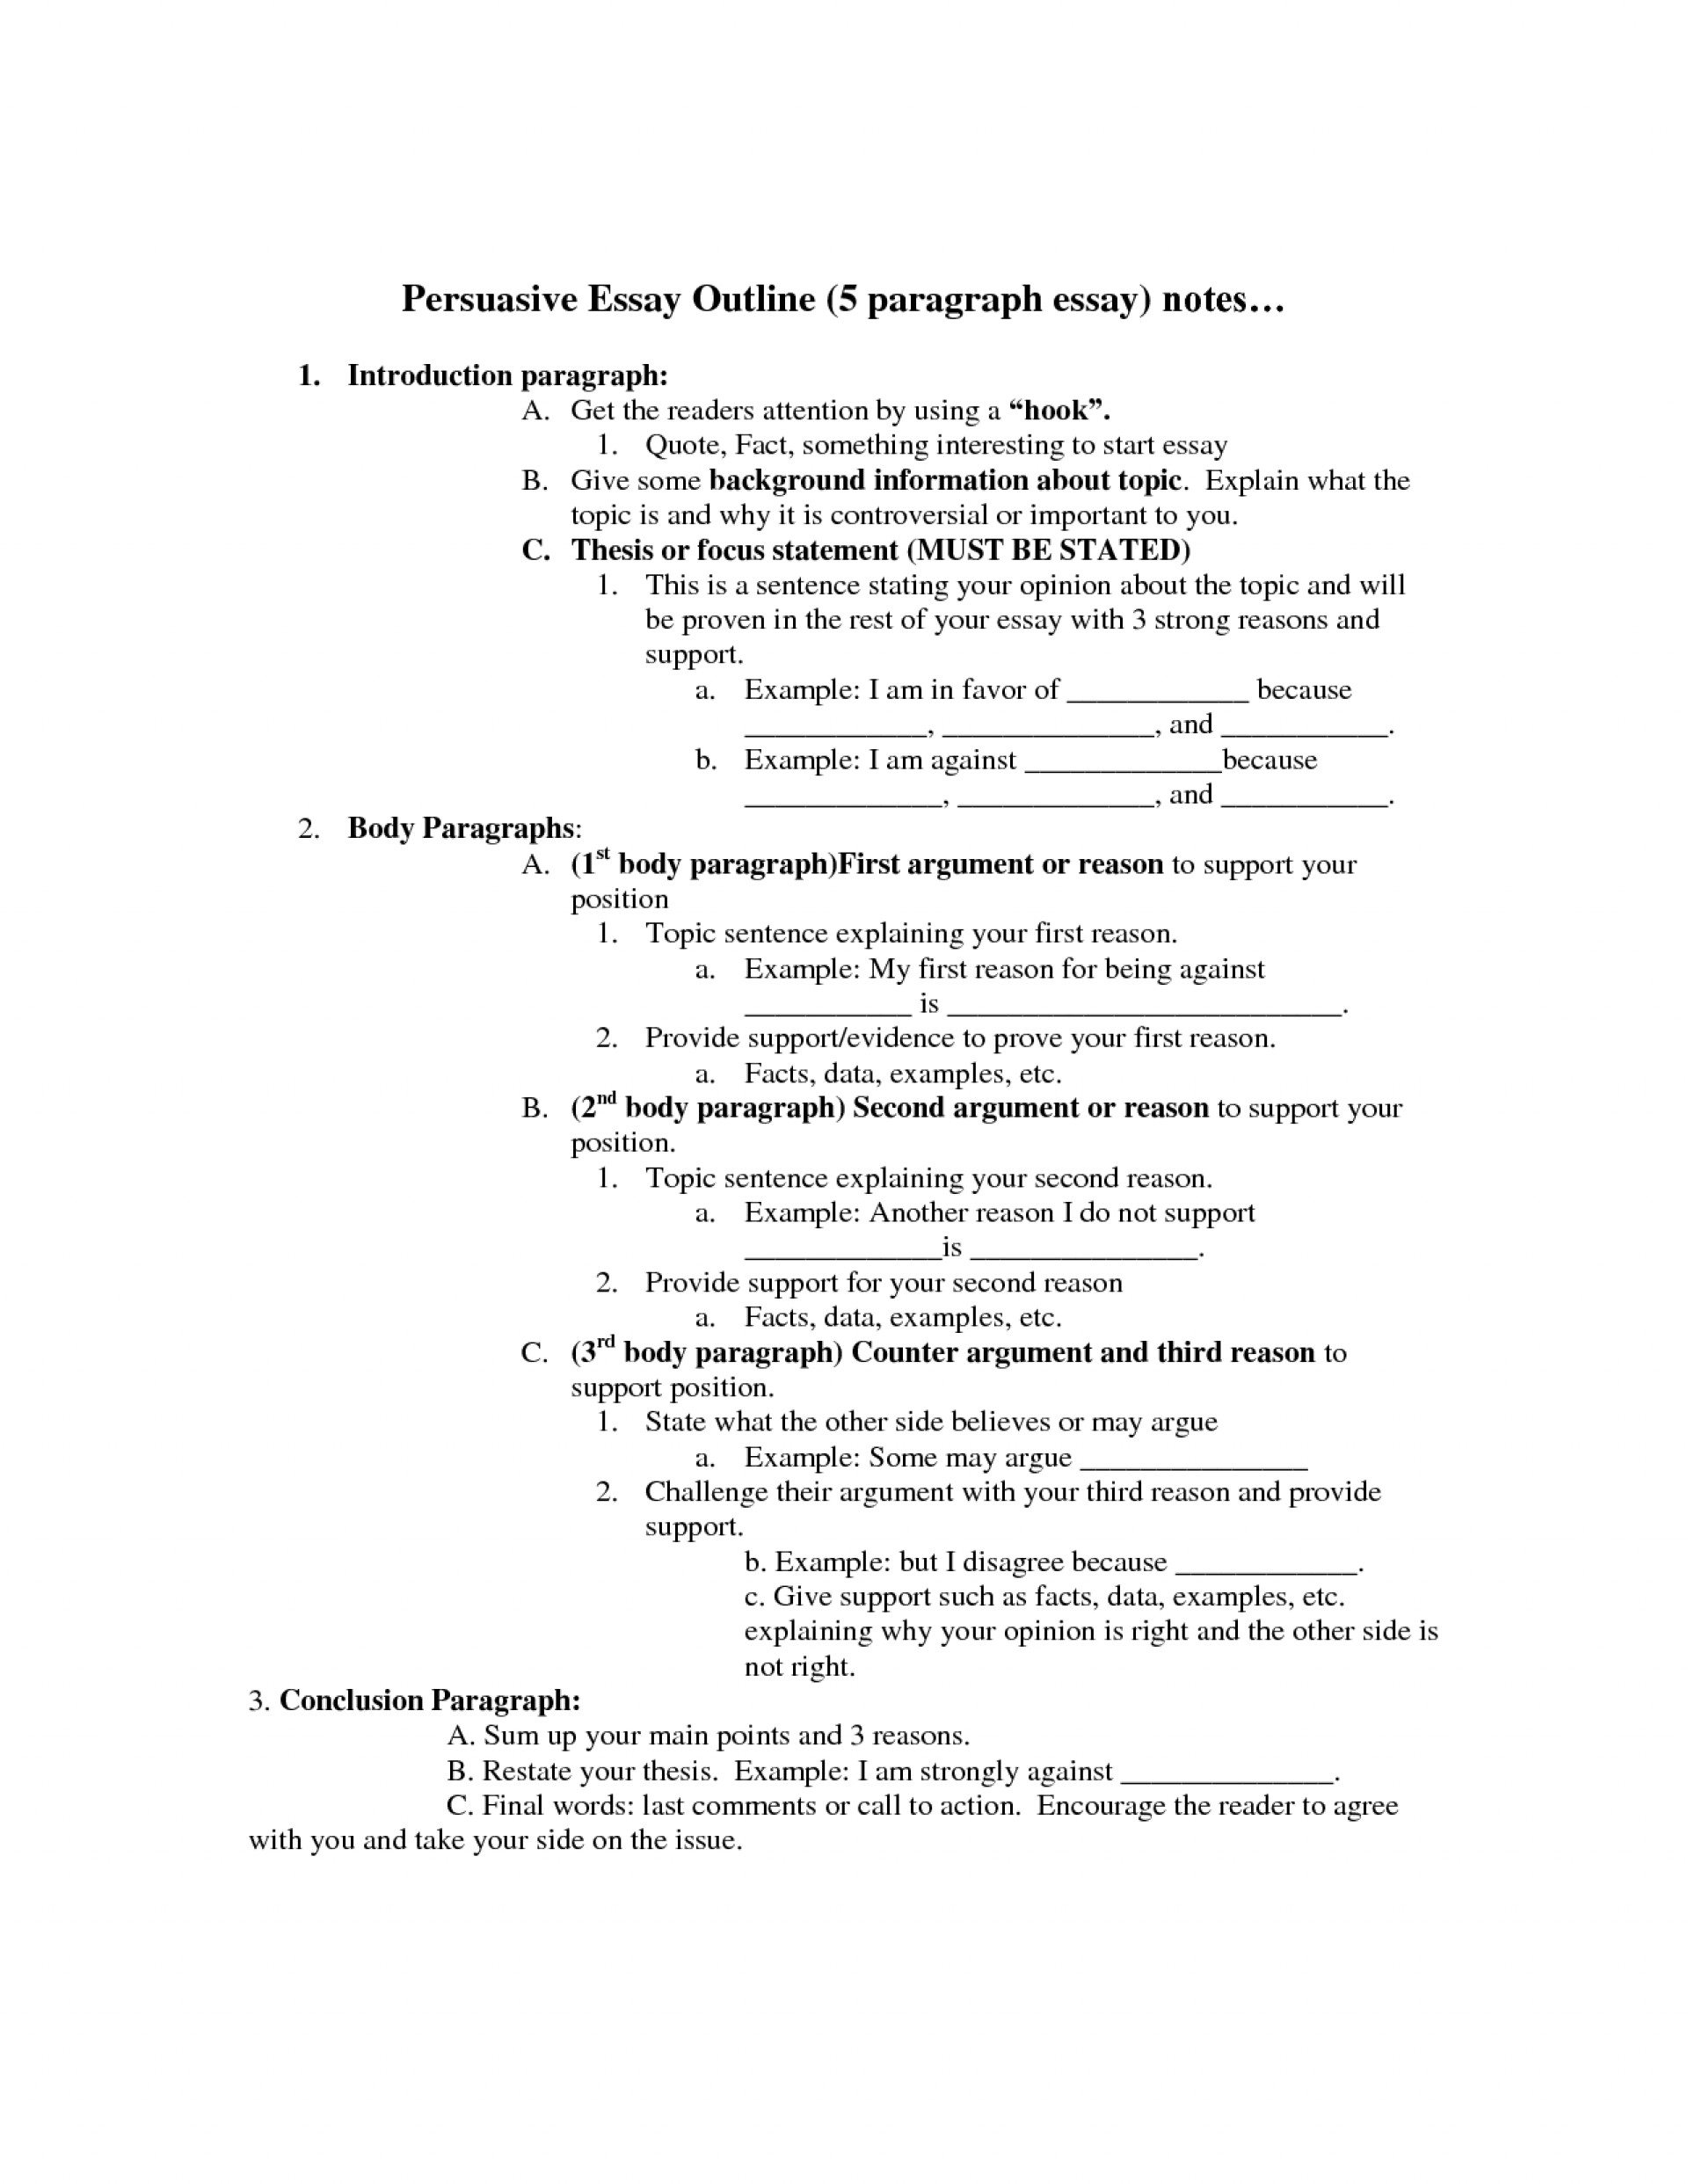 006 Persuasive Essay Outline Unbelievable Argumentative 5th Grade Template Pdf 1920